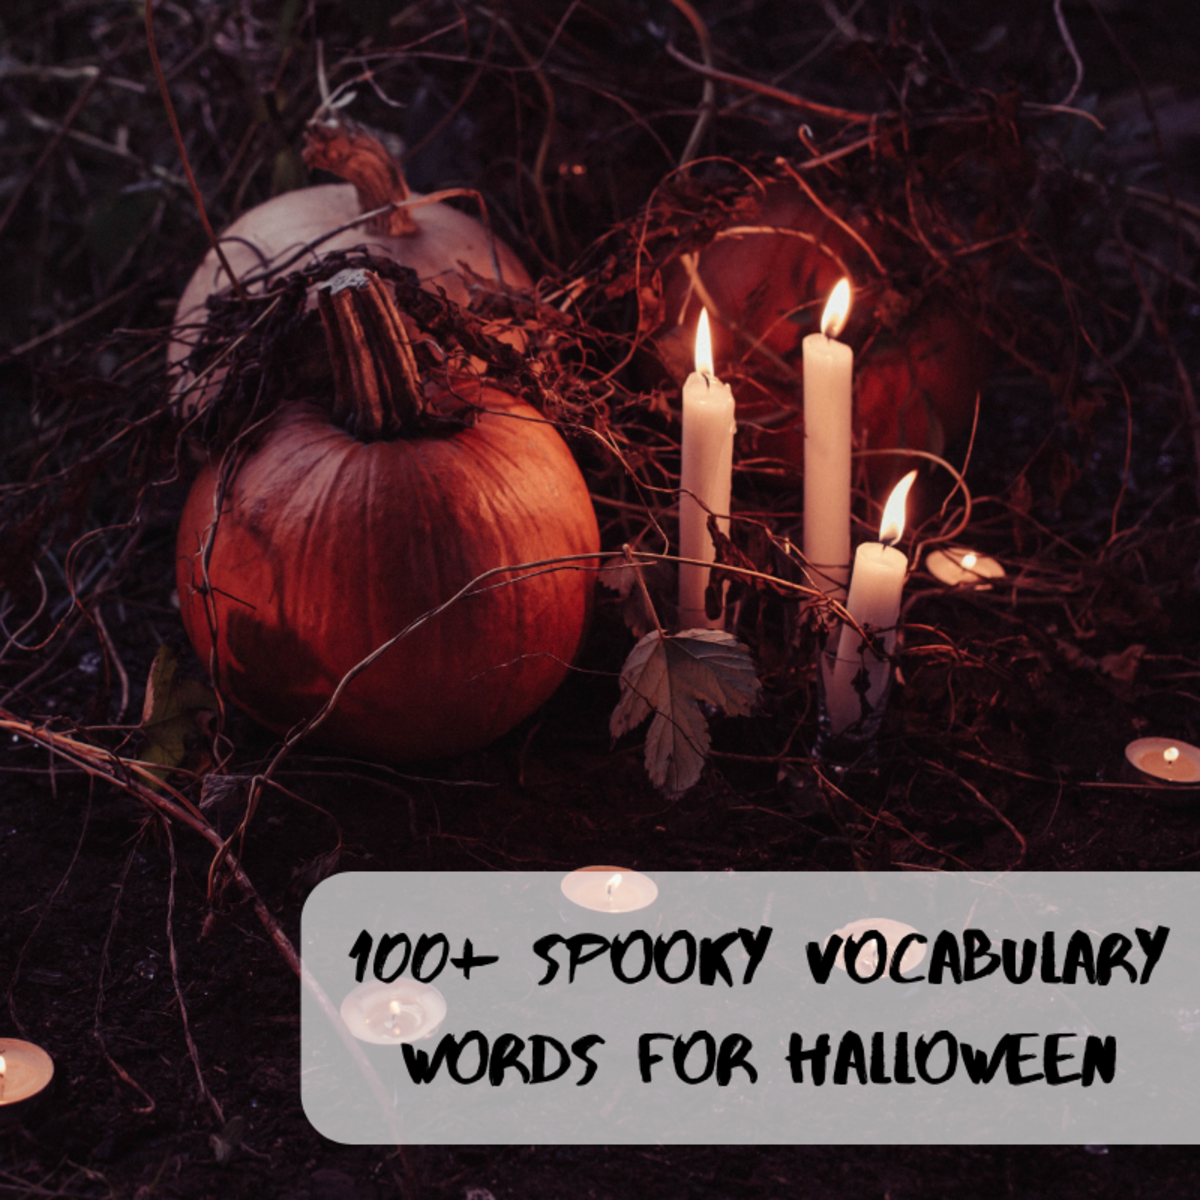 Halloween is a great time to combine fun with education—here are some spooky vocabulary words you can use in your celebrations.